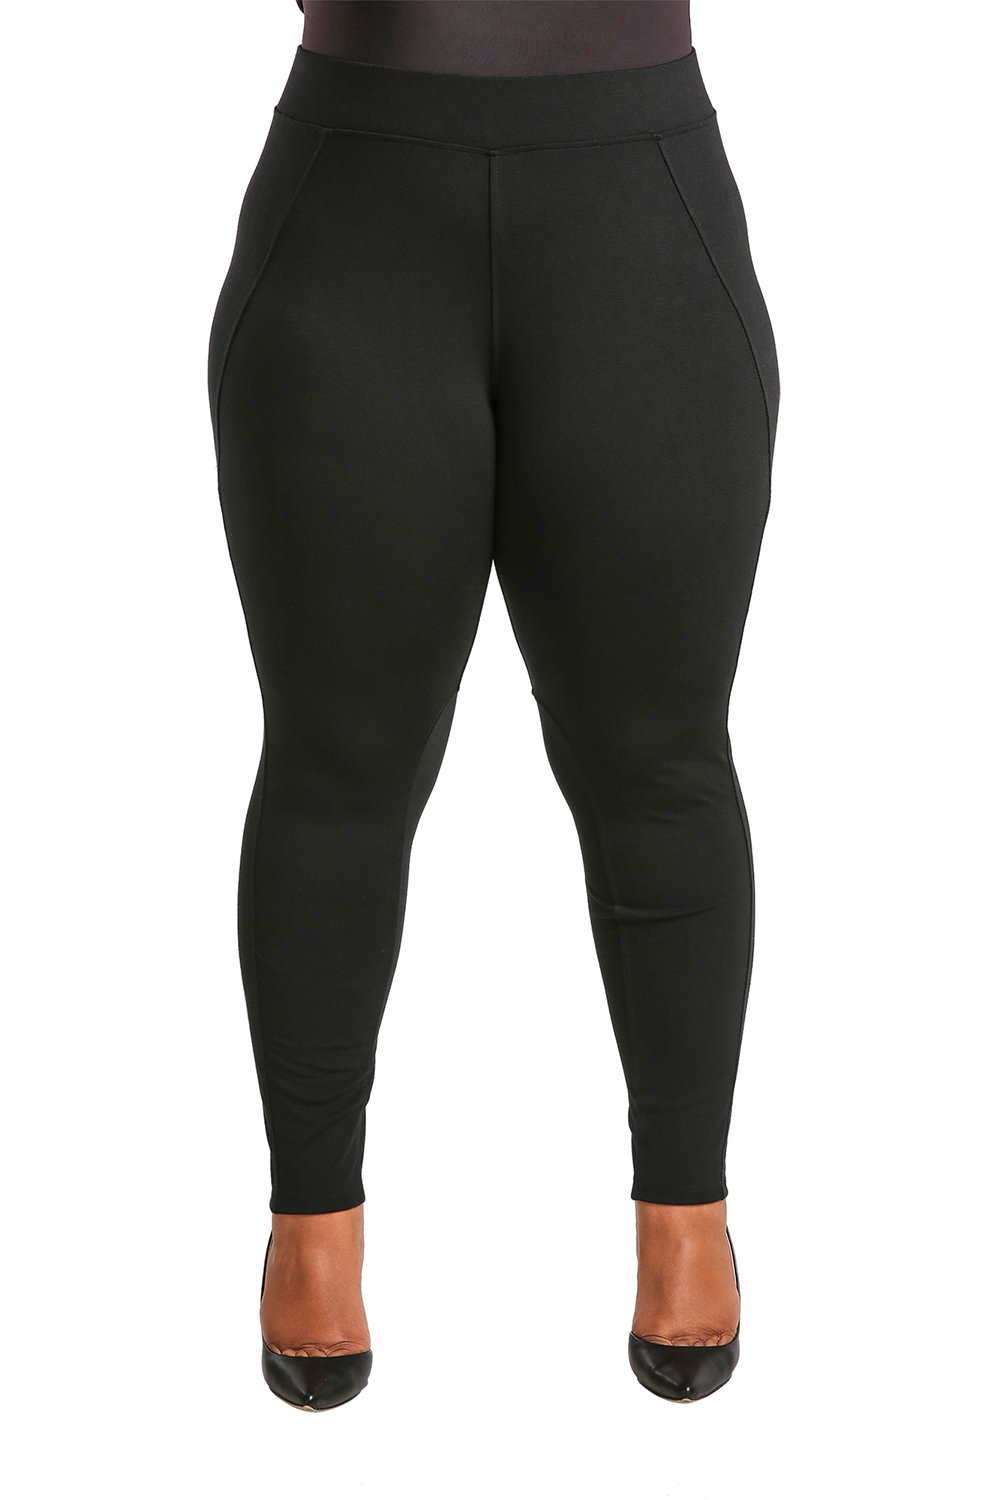 Poetic Justice Plus Size Women's Curvy Fit Black Stretch Ponte Pull On Moto Legging Size 2X by Poetic Justice (Image #1)